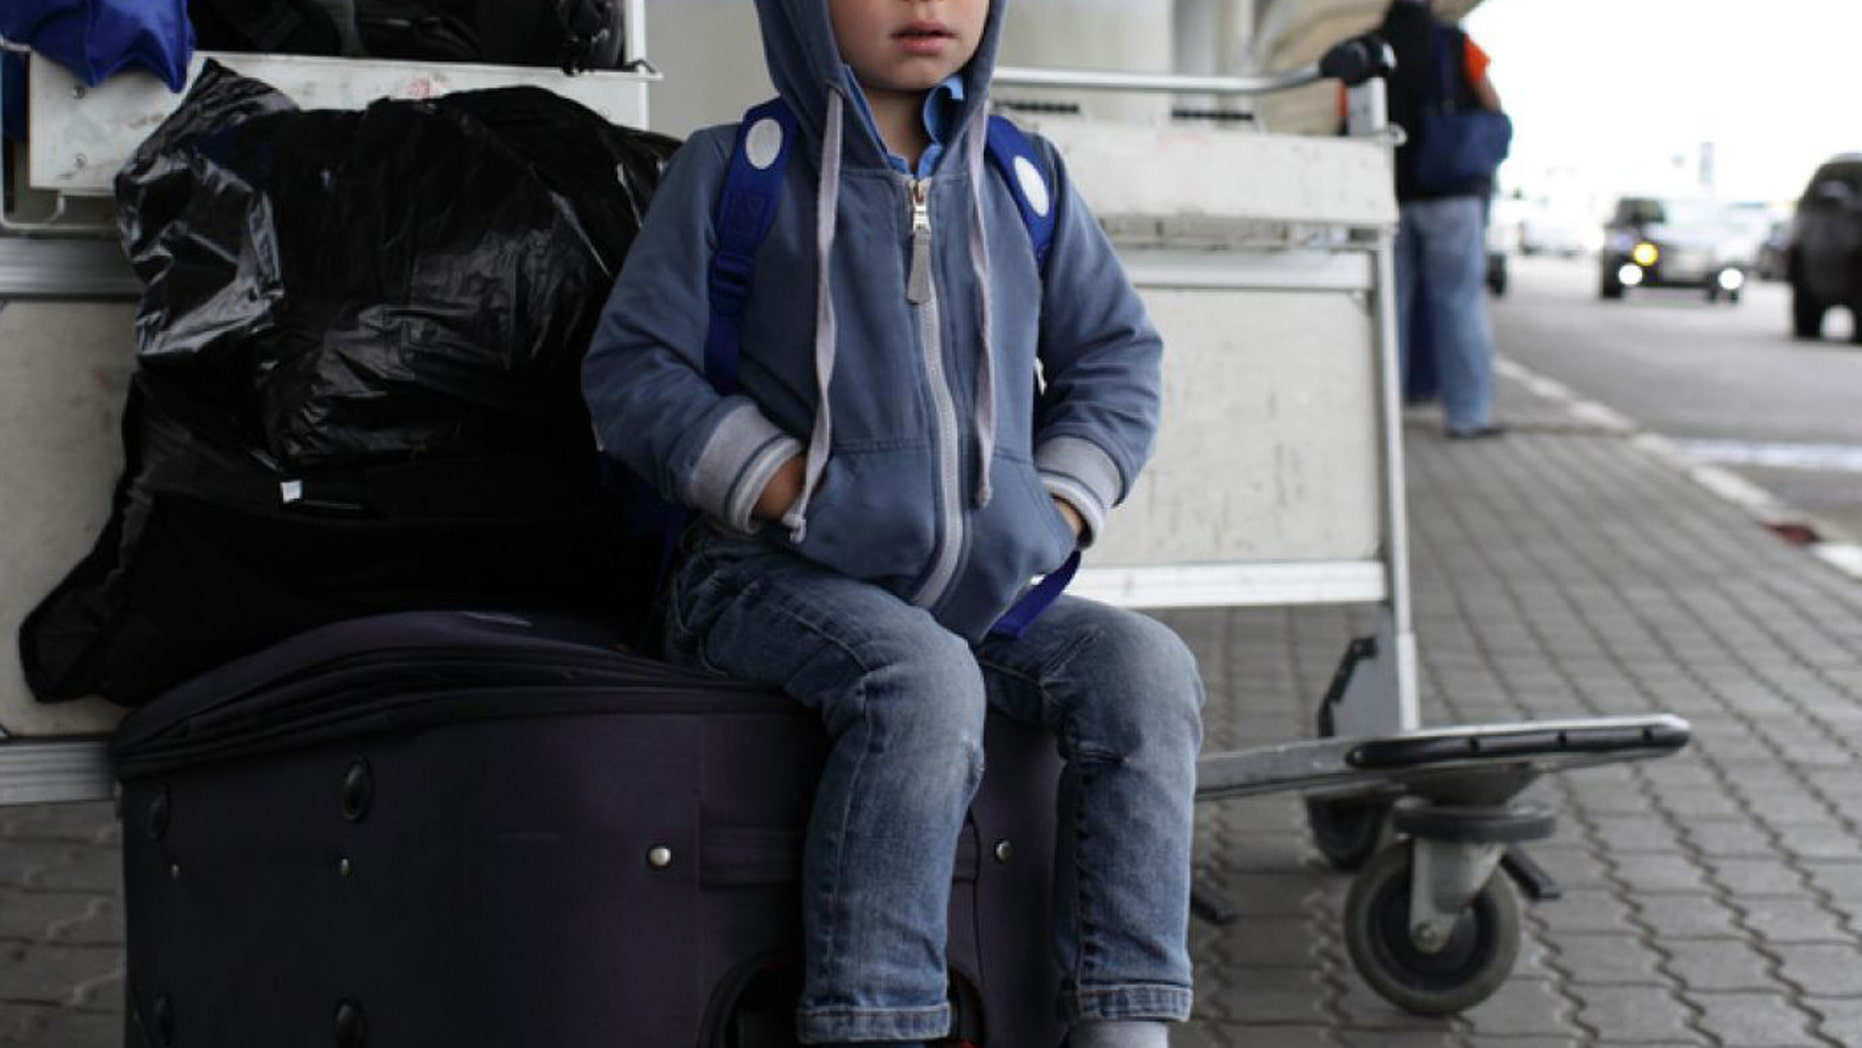 Reutlingen police said Tuesday that officers spotted the child wandering aimlessly and alone around the terminal.